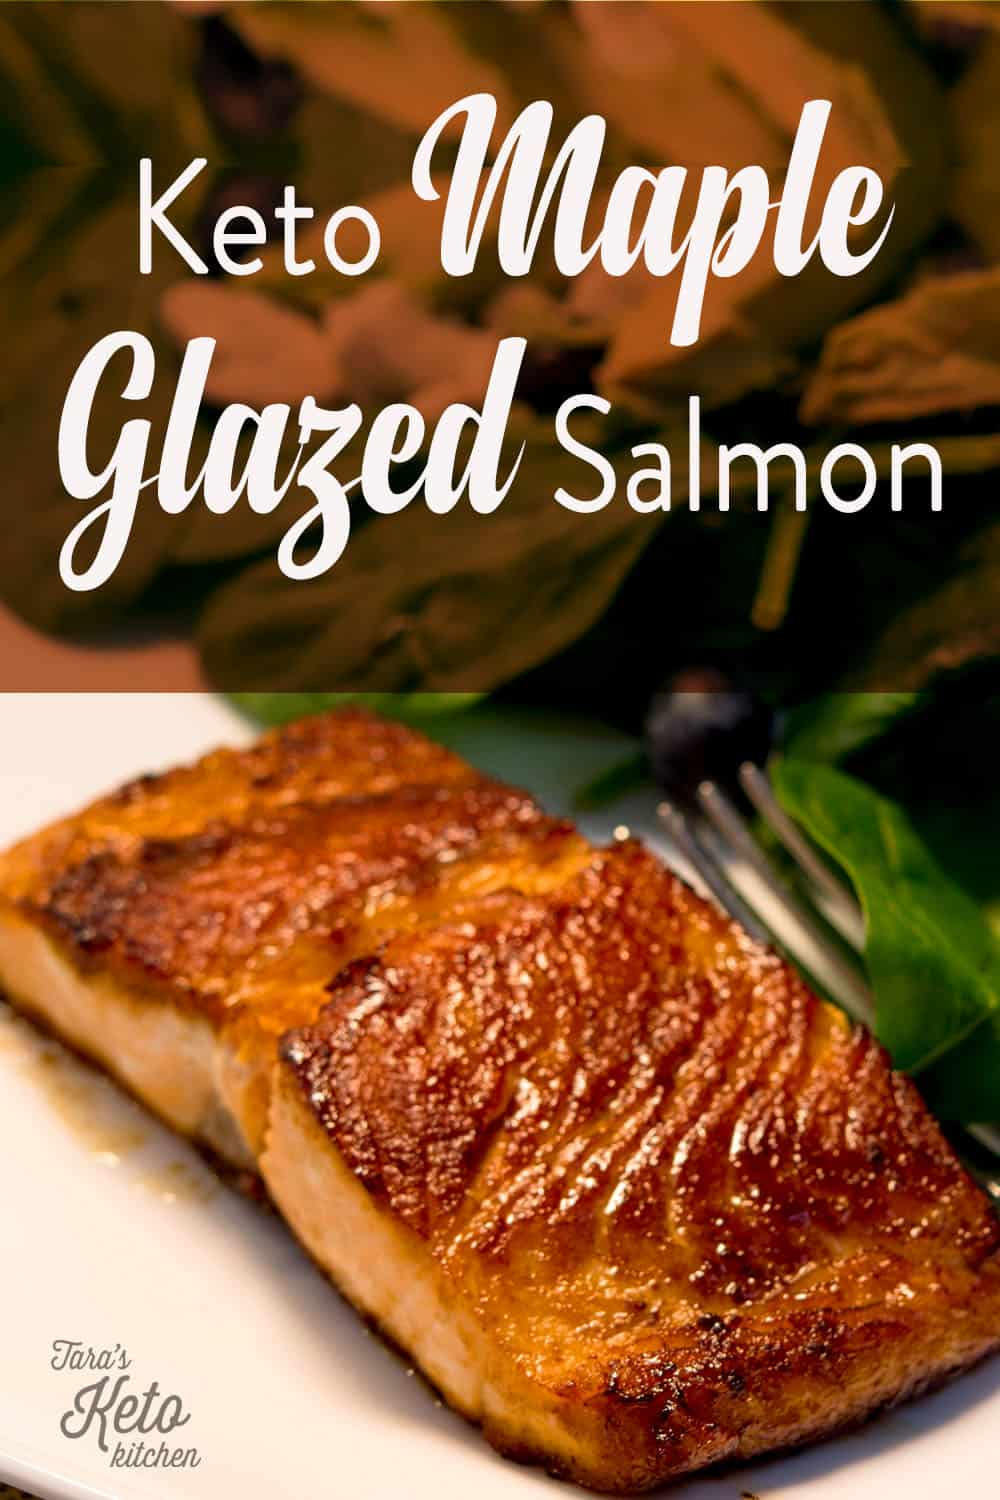 keto maple glazed salmon on a plate with fresh greens